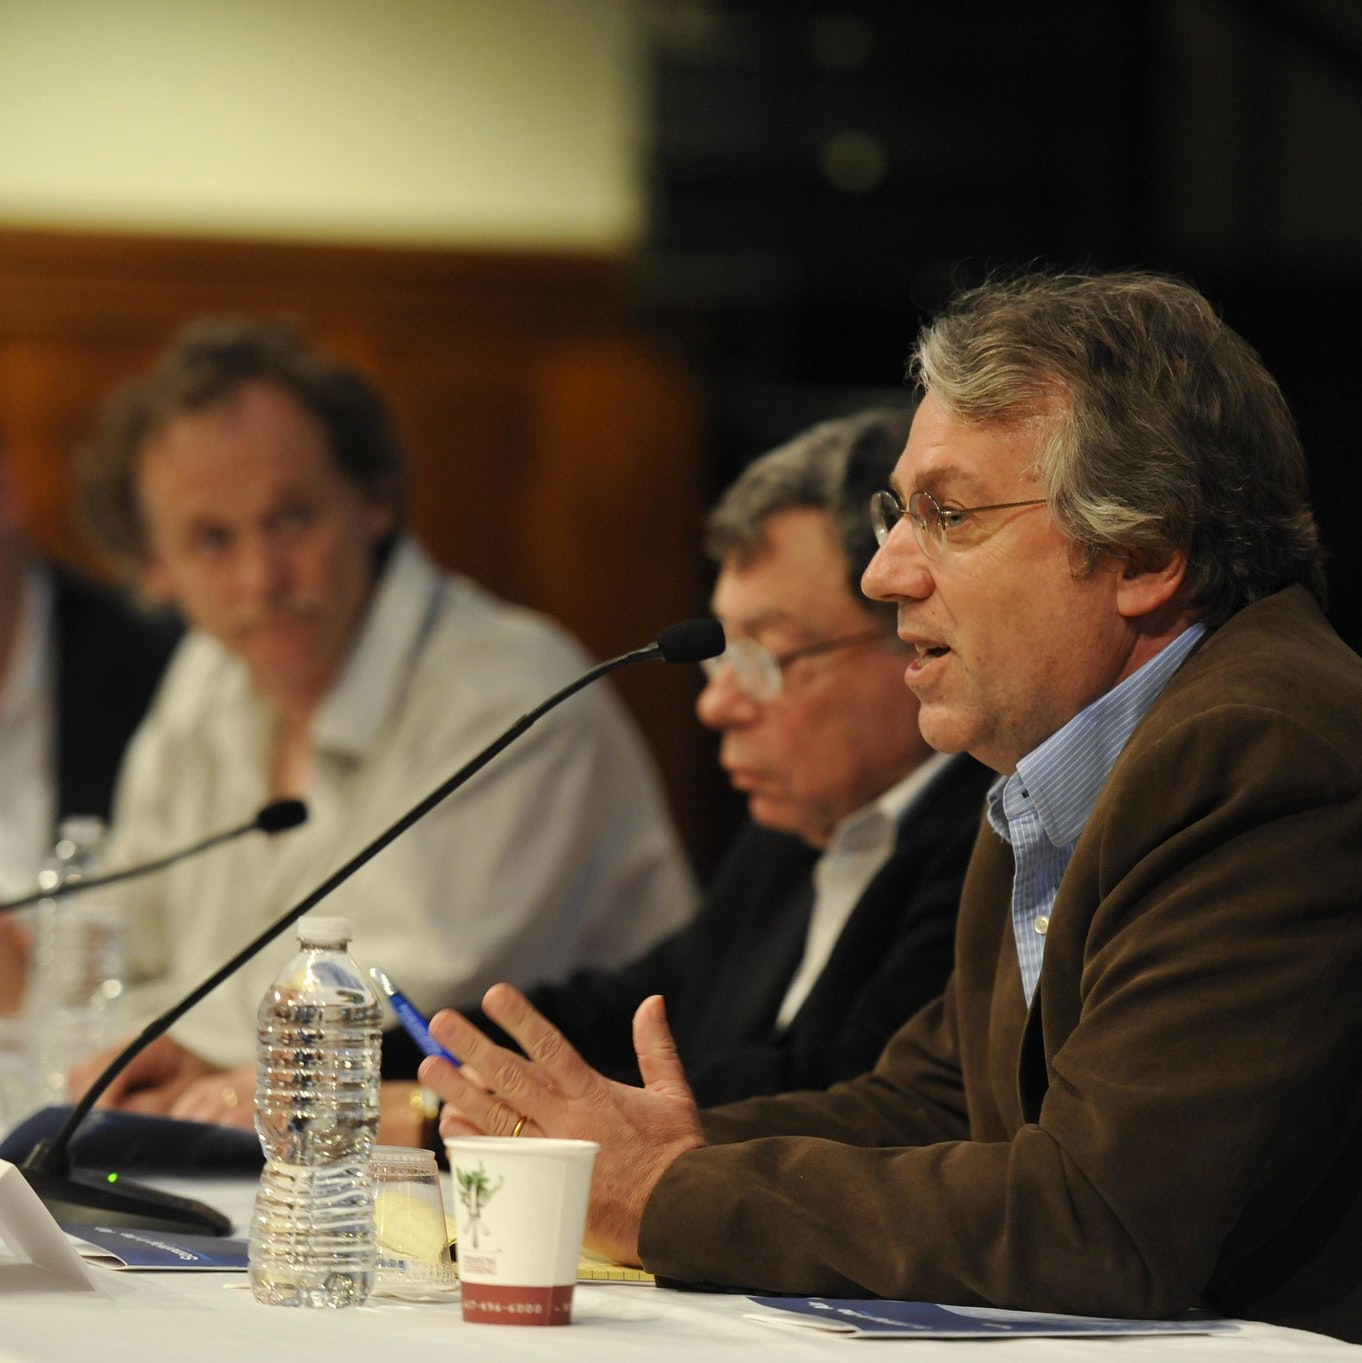 Four men sit at a panel table. One is speaking into a table microphone while the others listen.